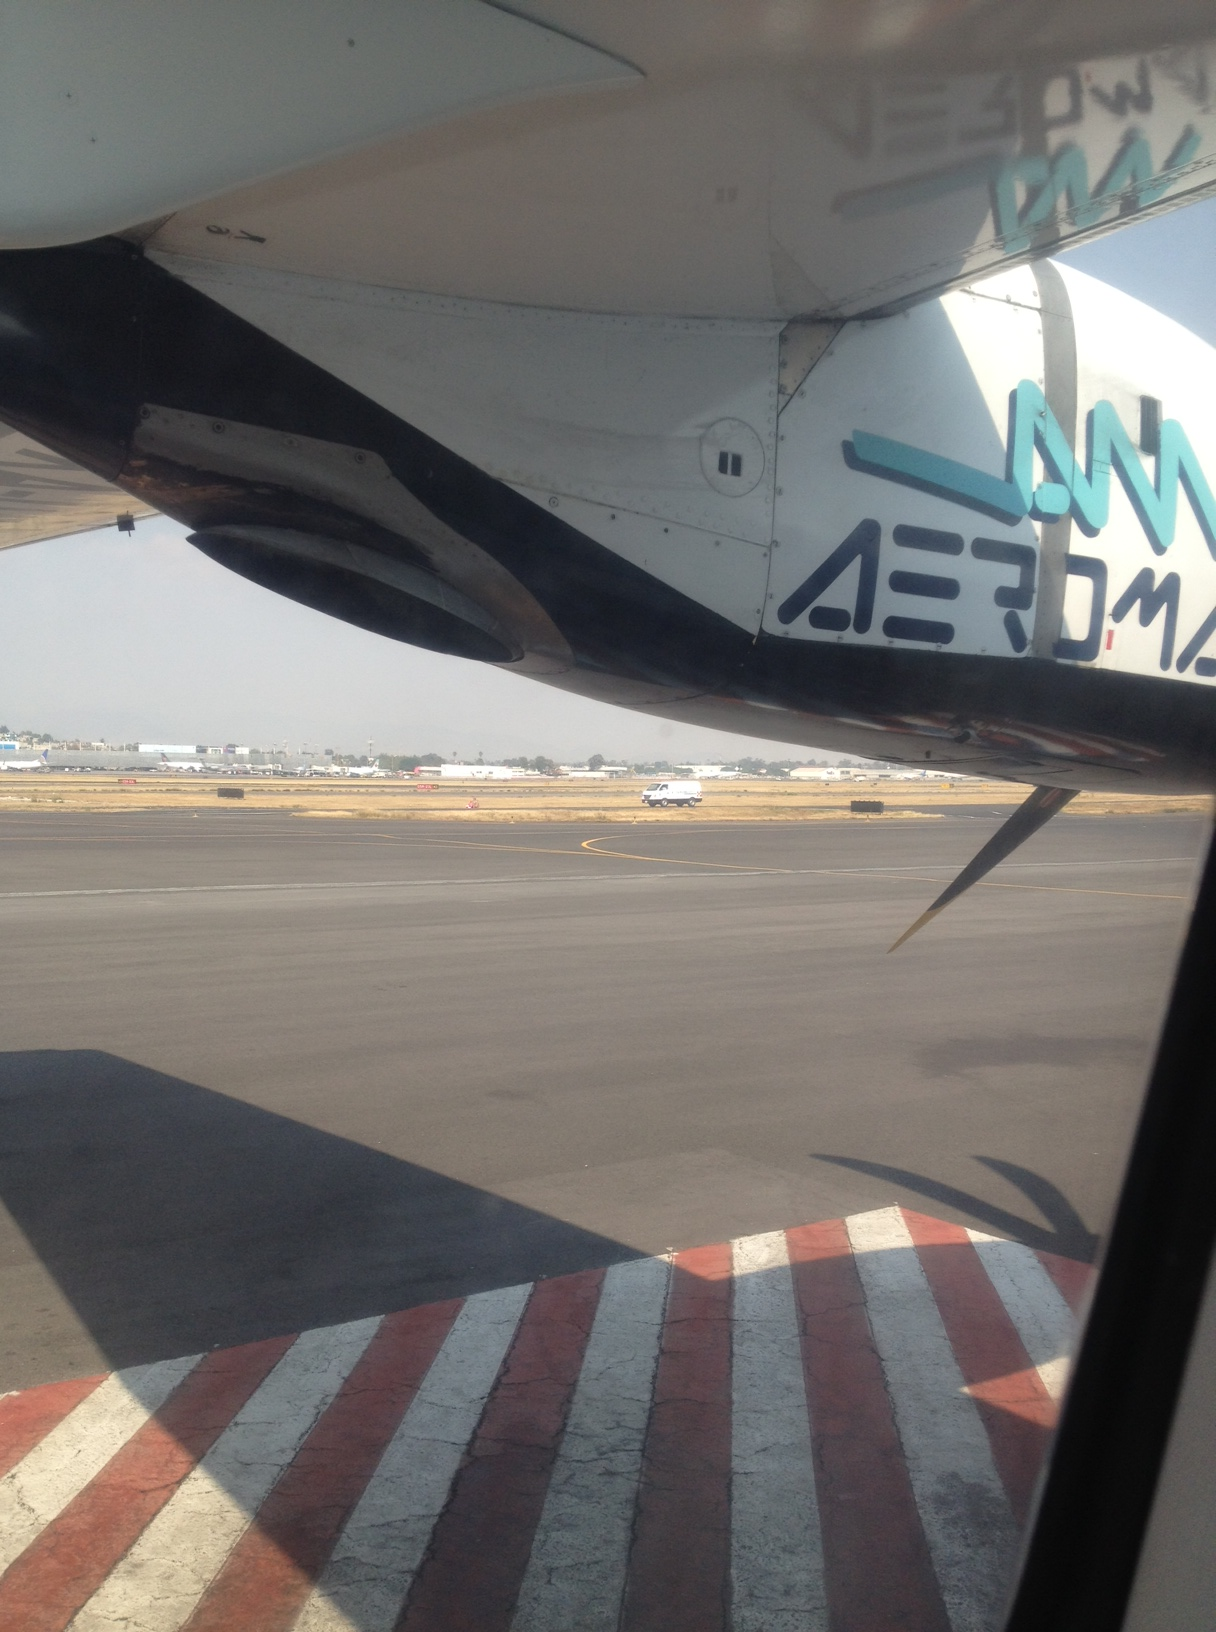 Why yes, that is a turboprop with the Mexico City Airport in the background